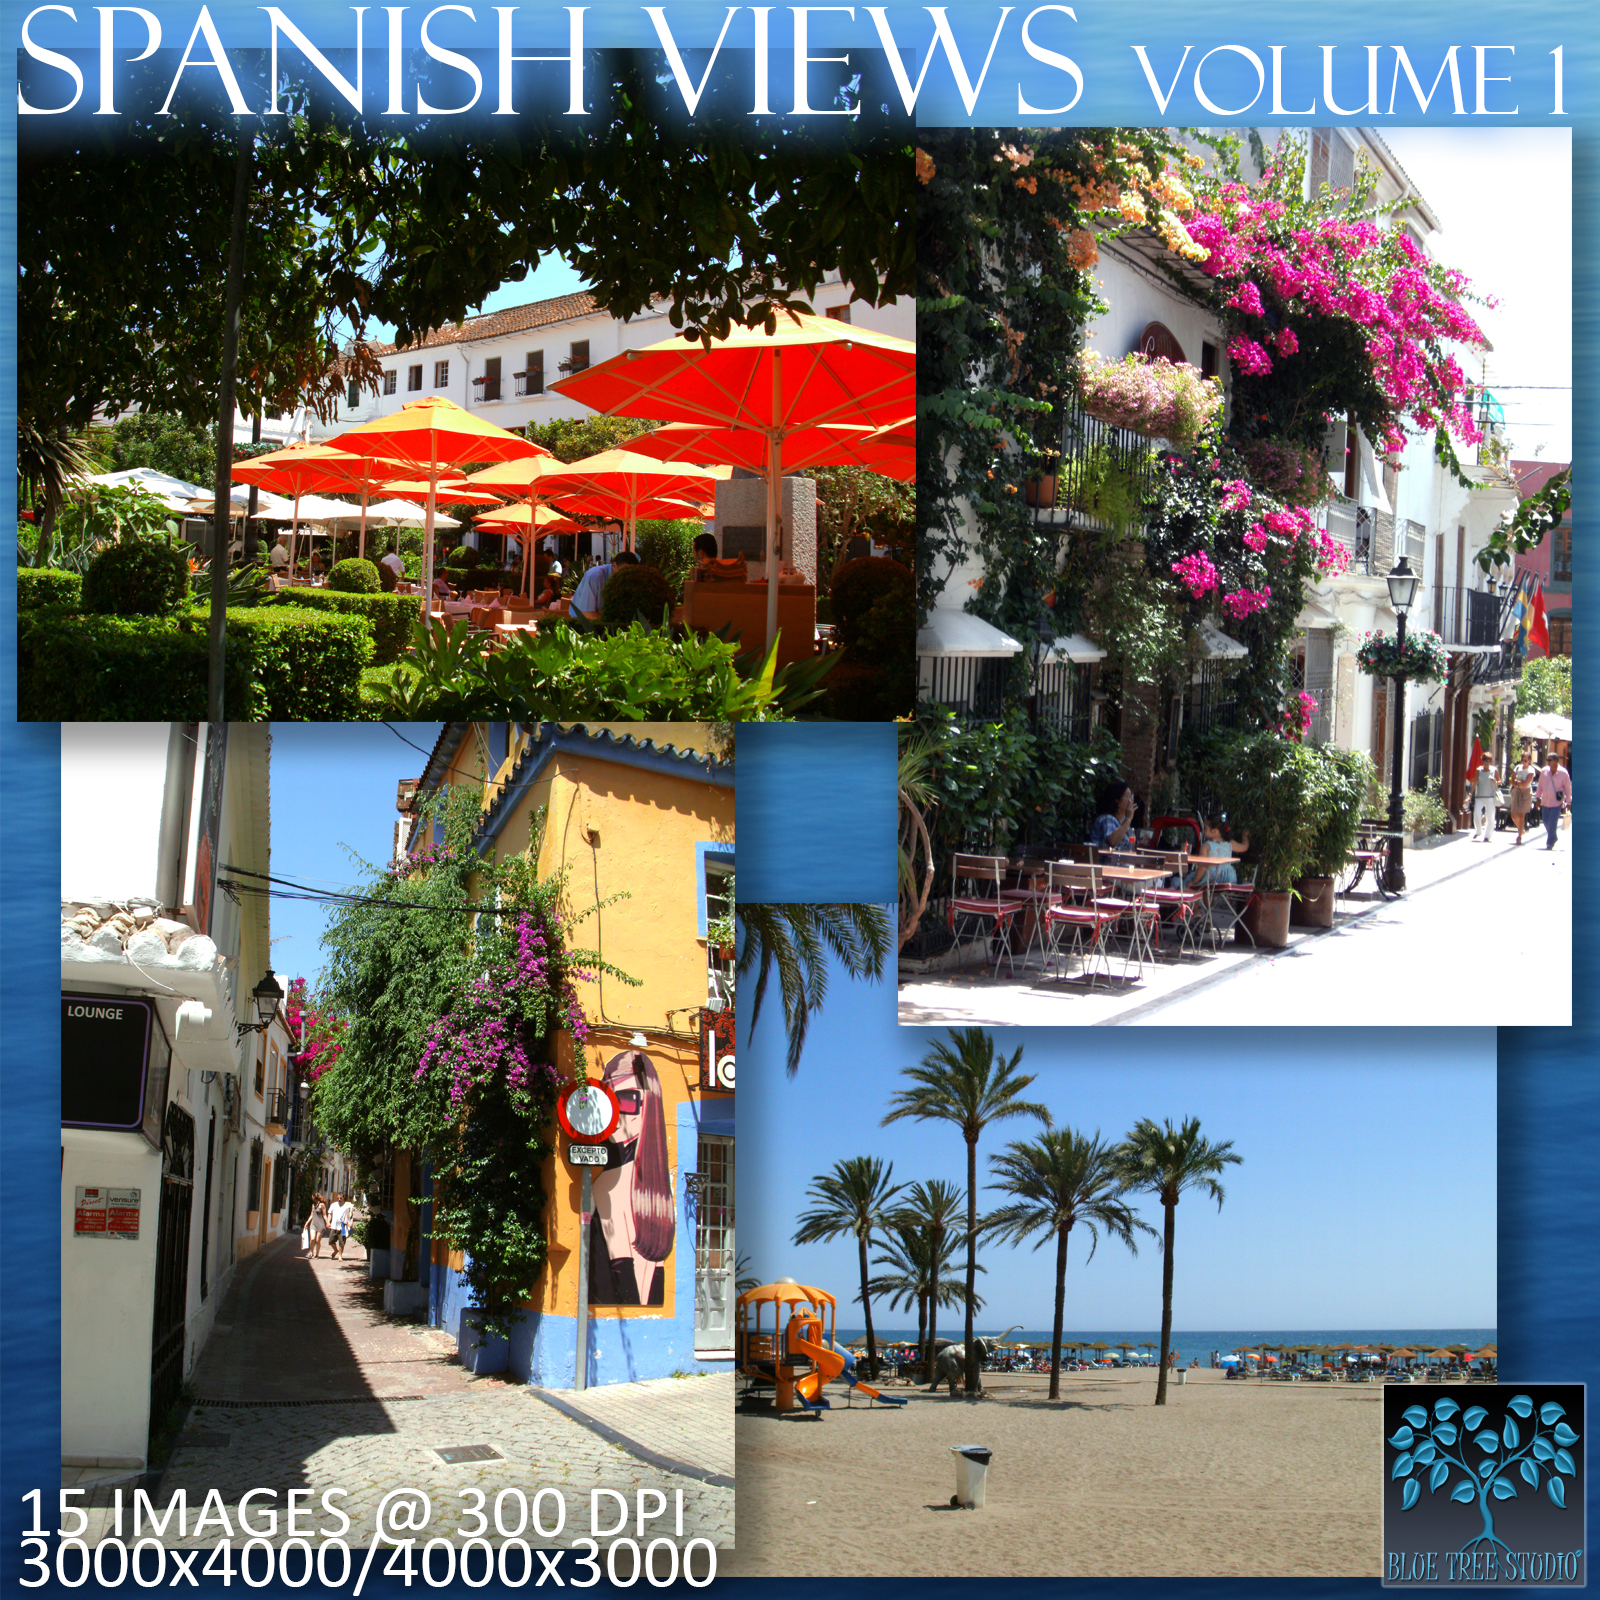 Spanish Views volume 1